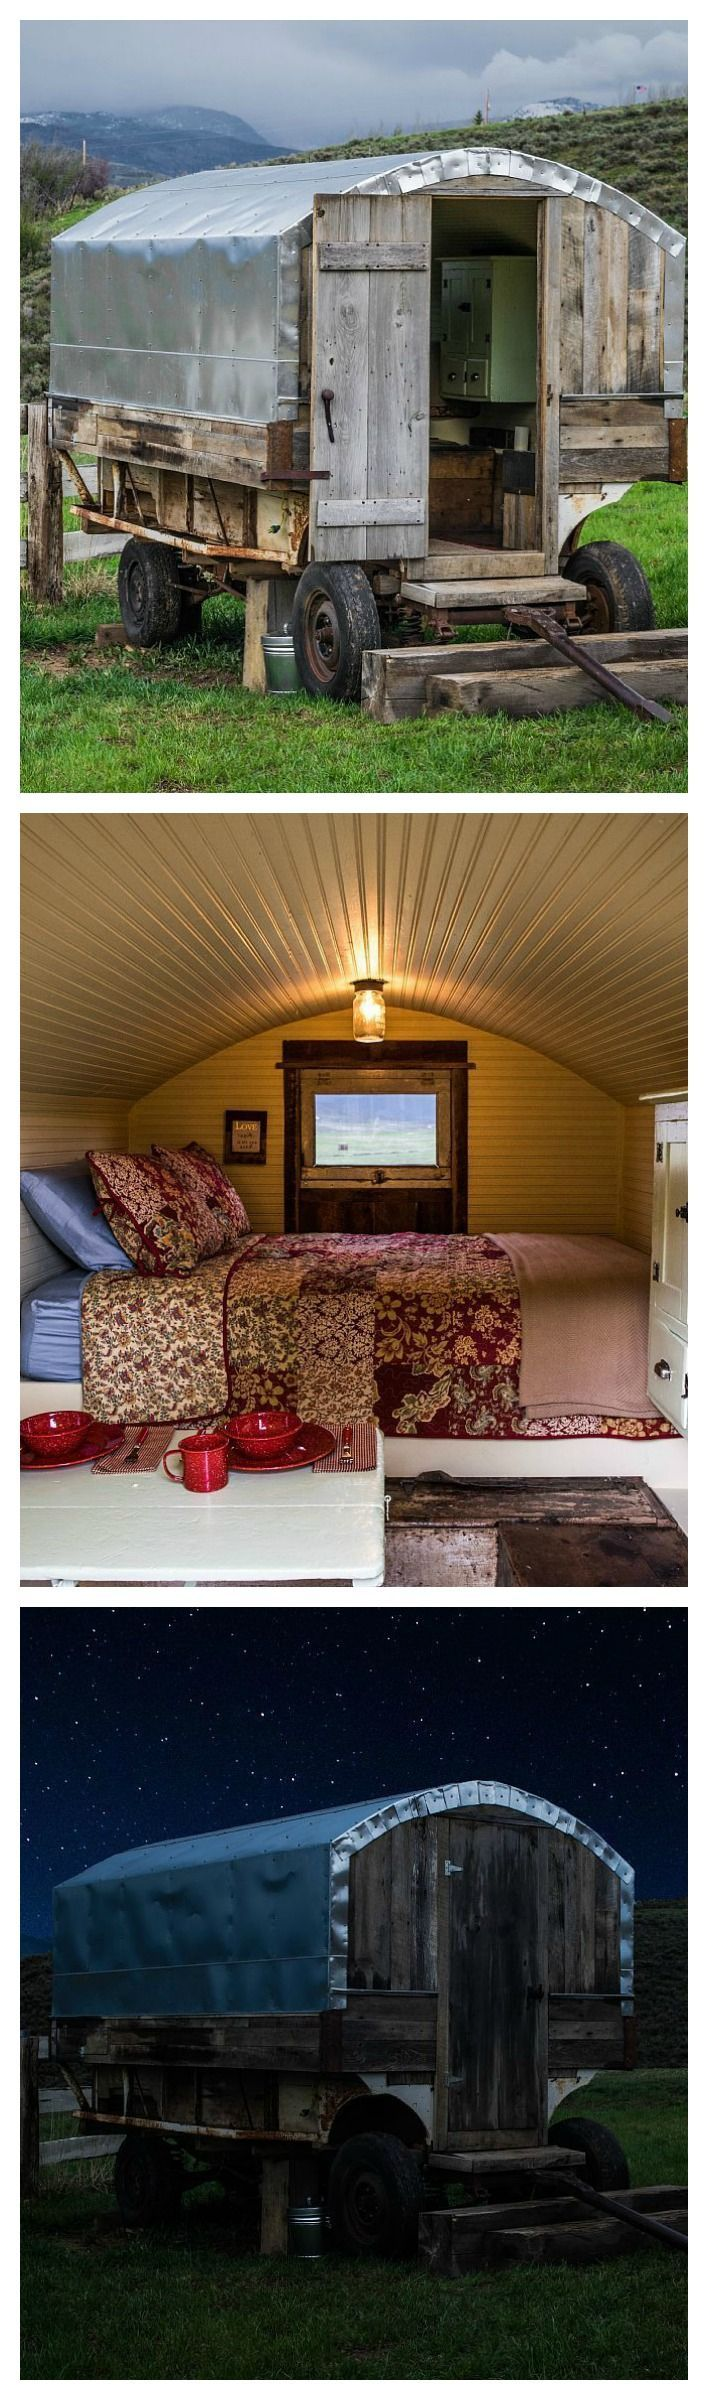 For anyone who's ever daydreamed about living like Laura Ingalls Wilder, this unique 1930s sheepherder's wagon is one way to indulge your Little House on the Prairie fantasies.